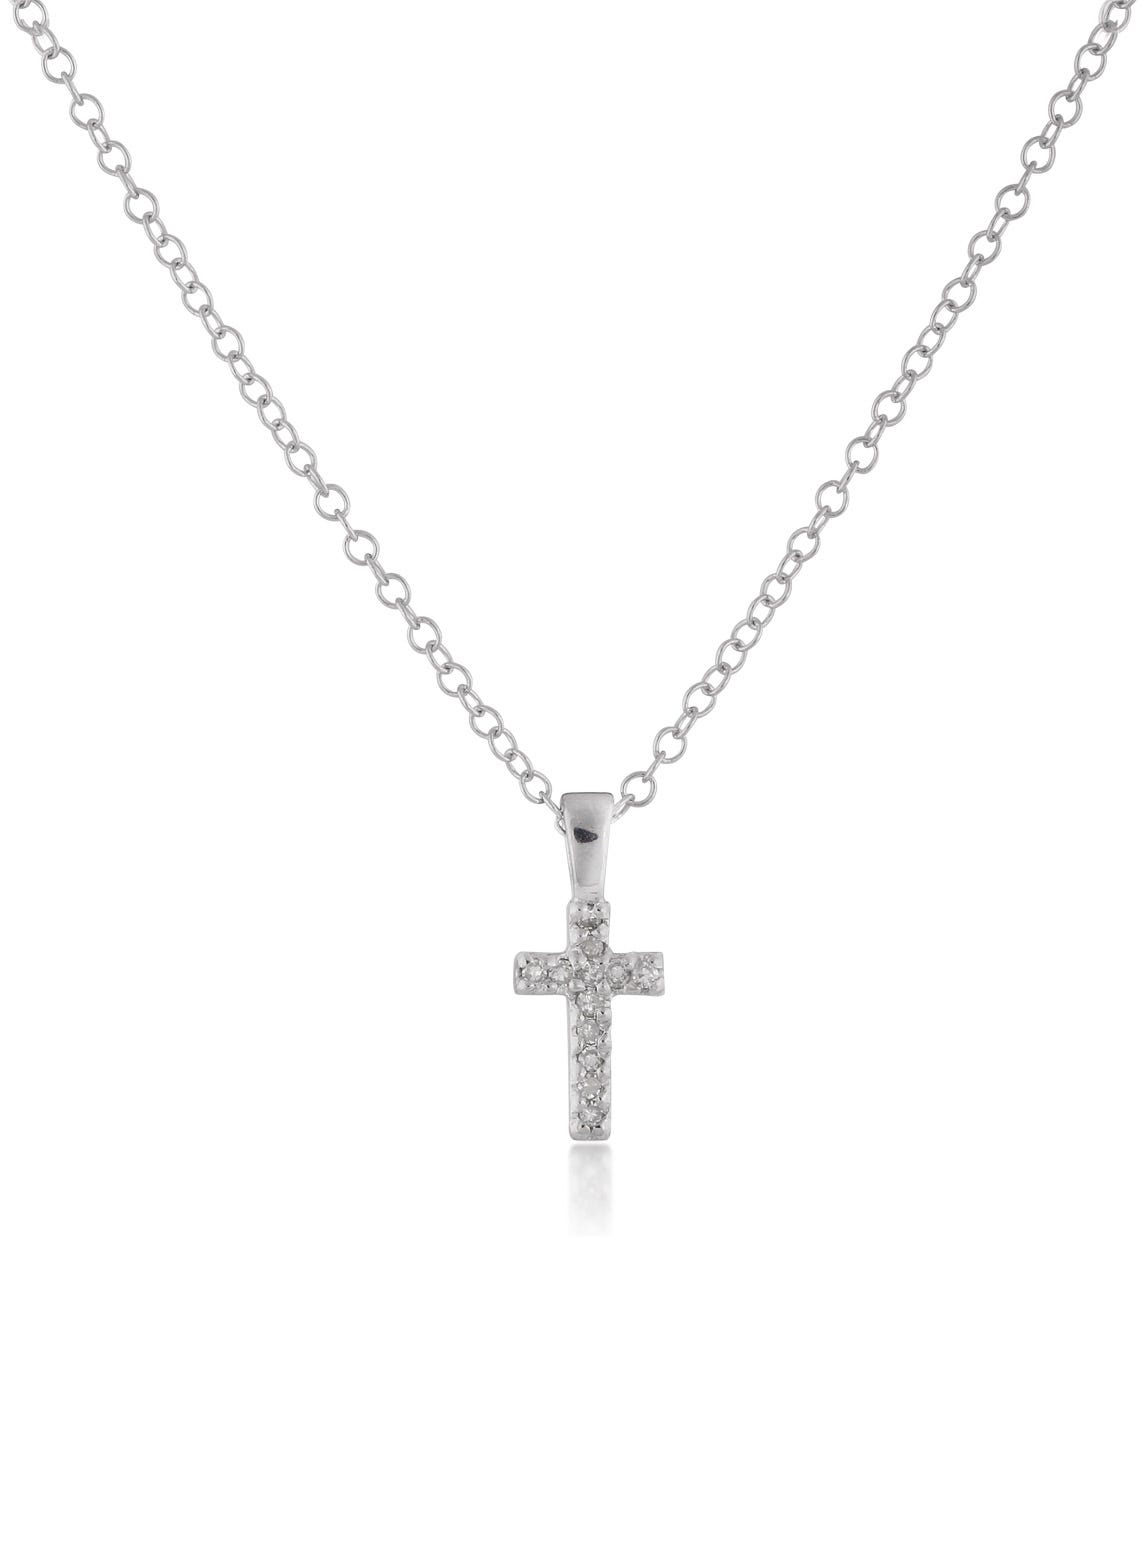 Diamond Cross Pendant Children's Necklace in Sterling Silver 15